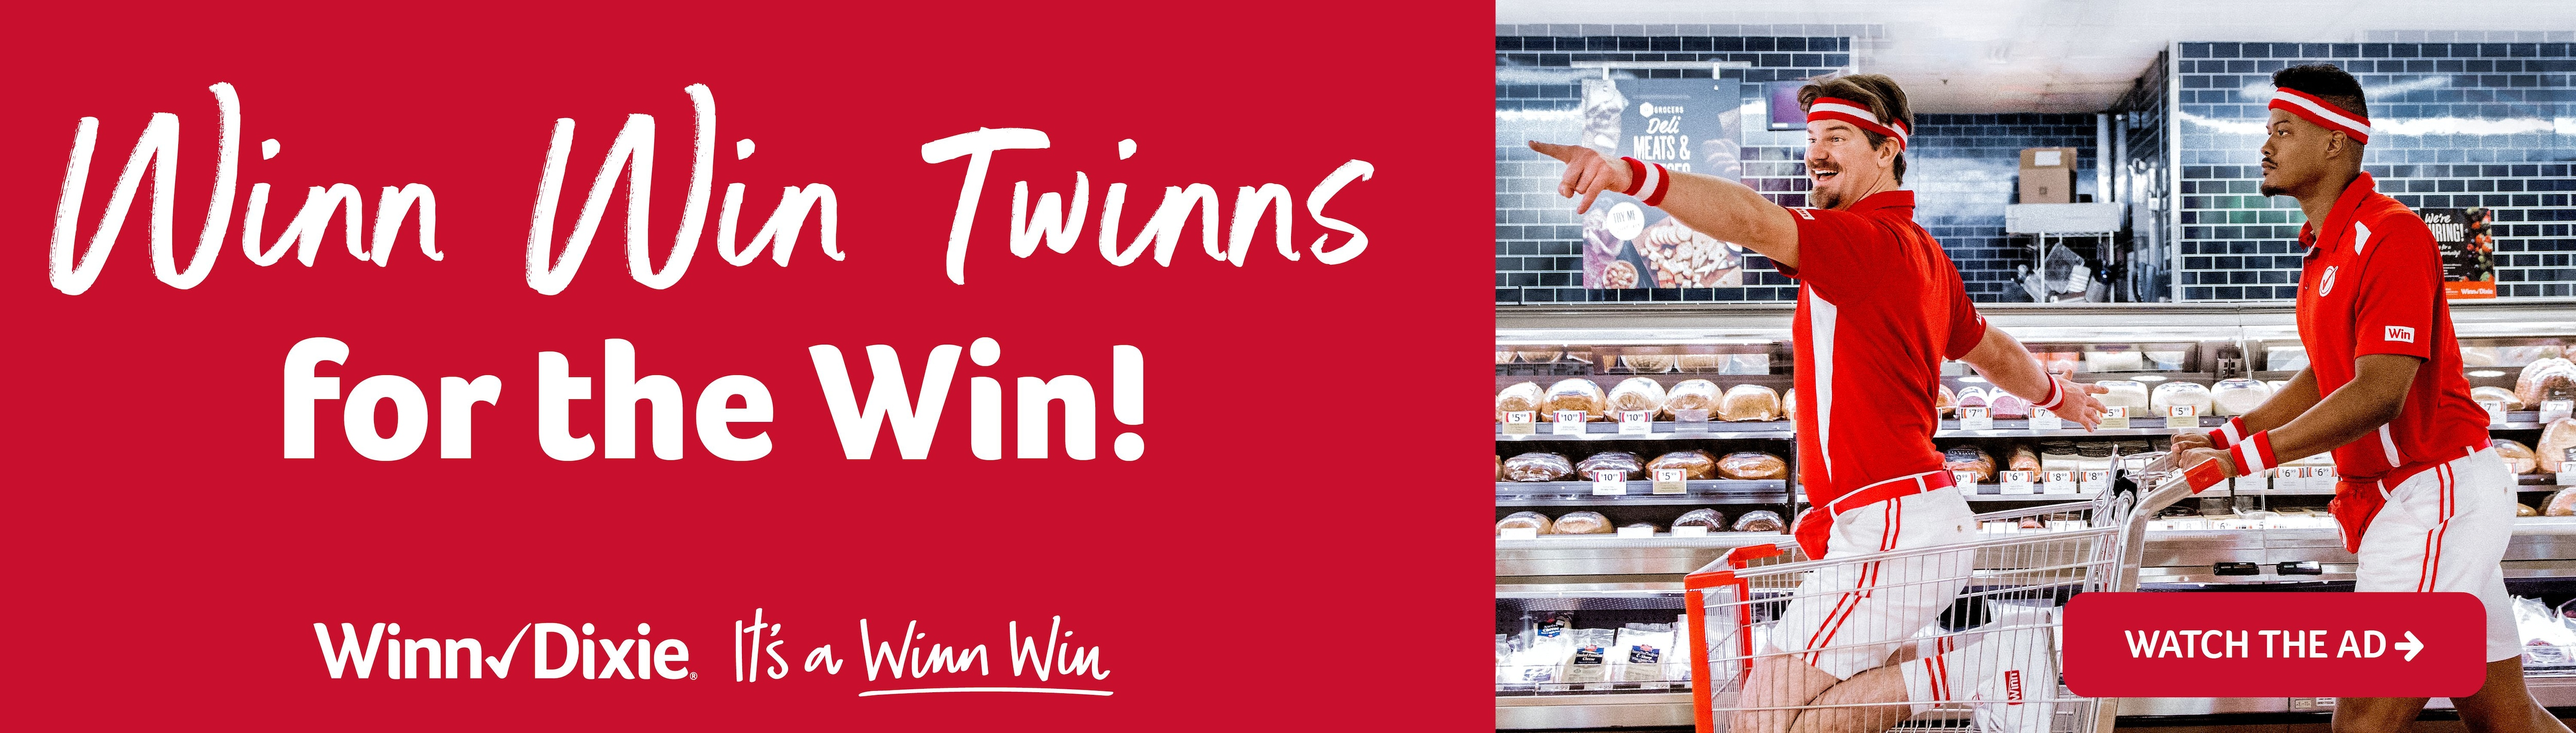 Winn Win Twinns for the Win! Watch the ad now